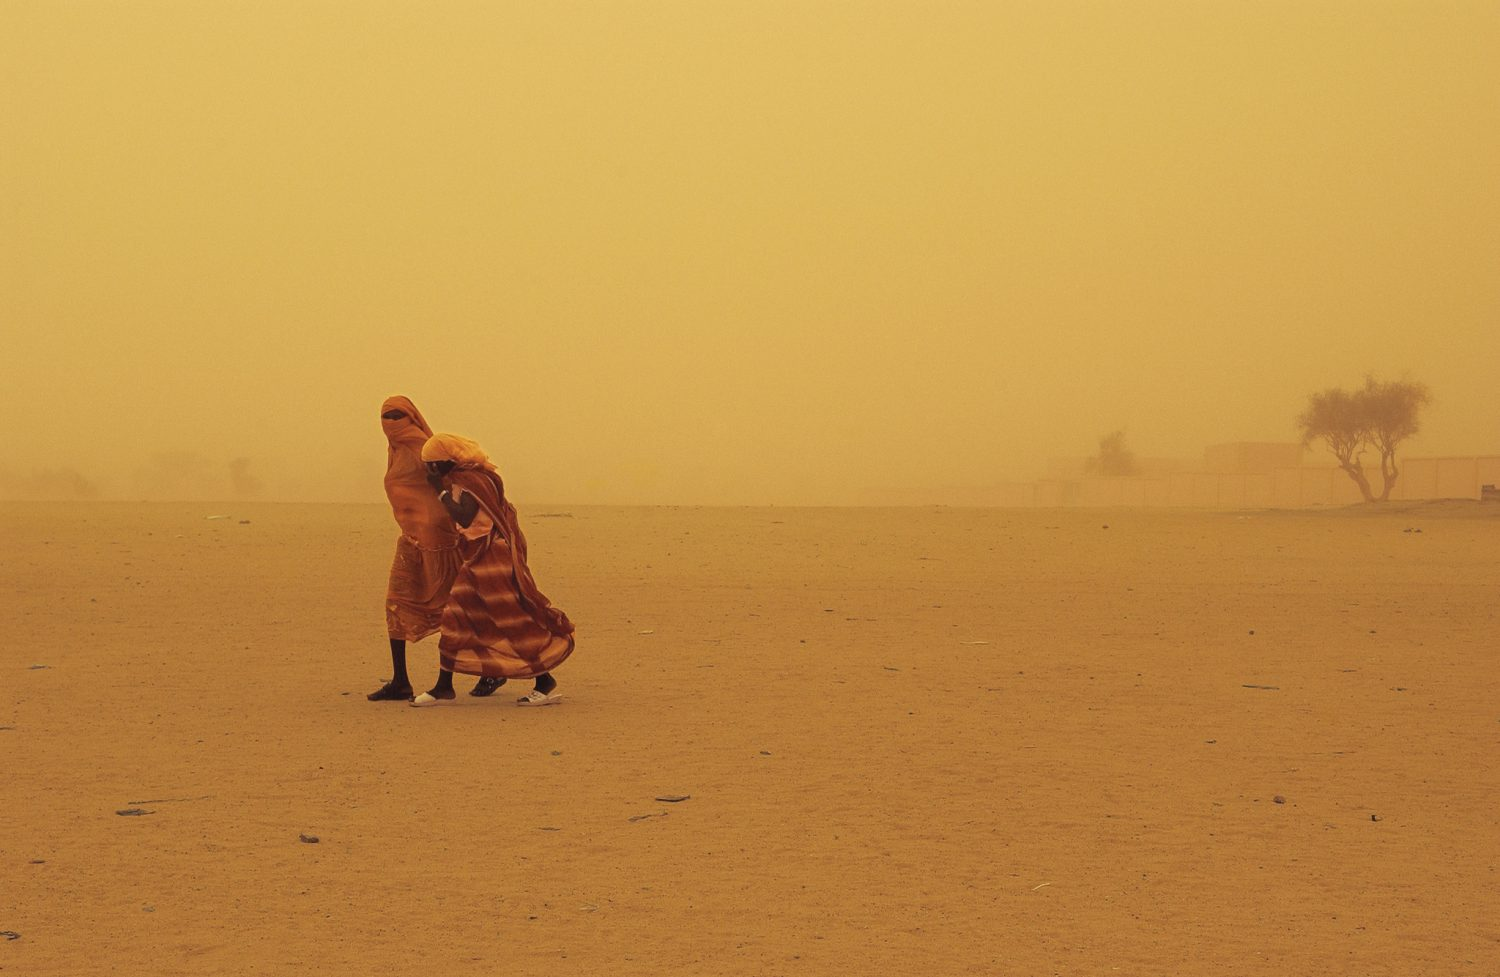 Two women walk through a sandstorm in Bahai, Chad, along the border with Darfur, Sudan, 